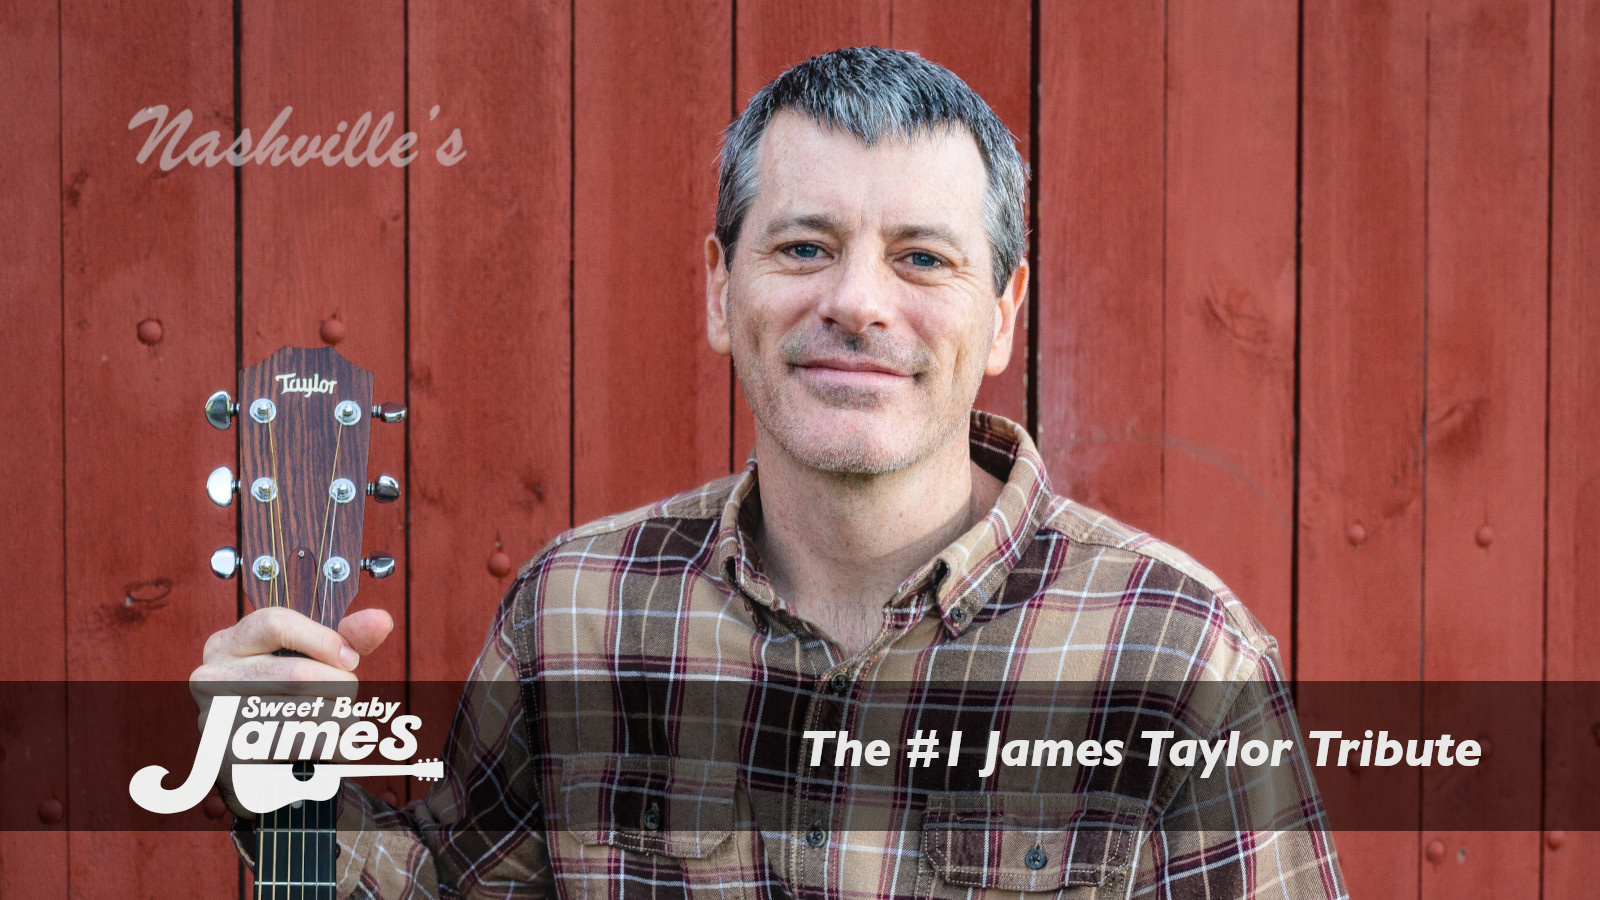 Sweet Baby James – James Taylor Tribute